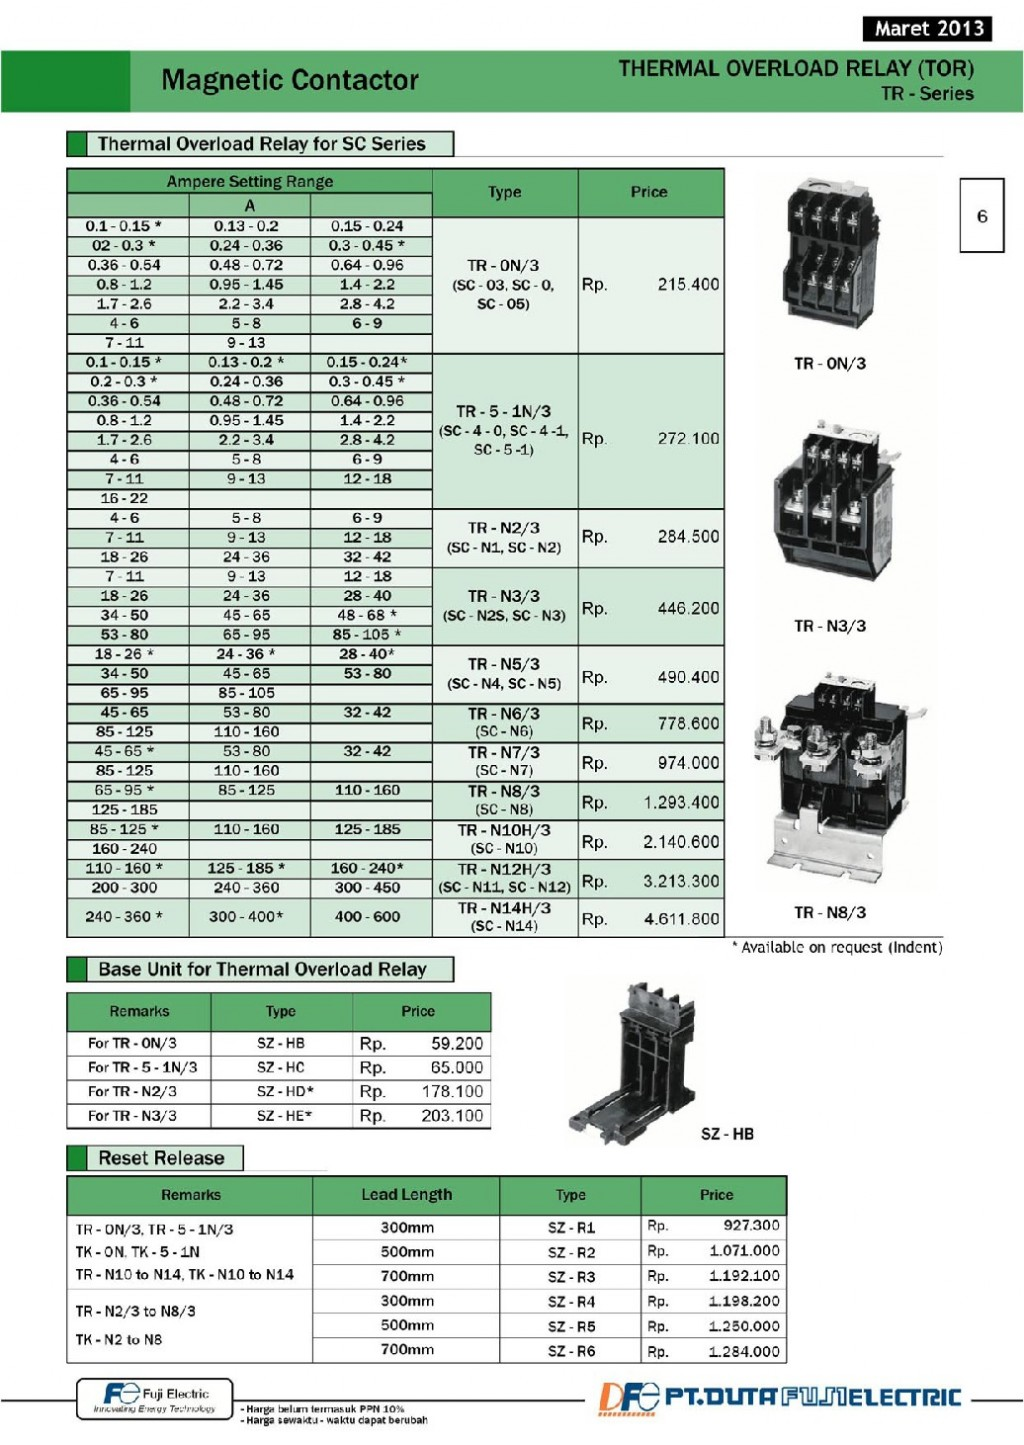 ACCESSORIES PANEL & BOX PANEL, PRICELIST KOMPONEN FUJI, Magnetic Contactor - Thermal Overload Relay (TOR) - TR-Series